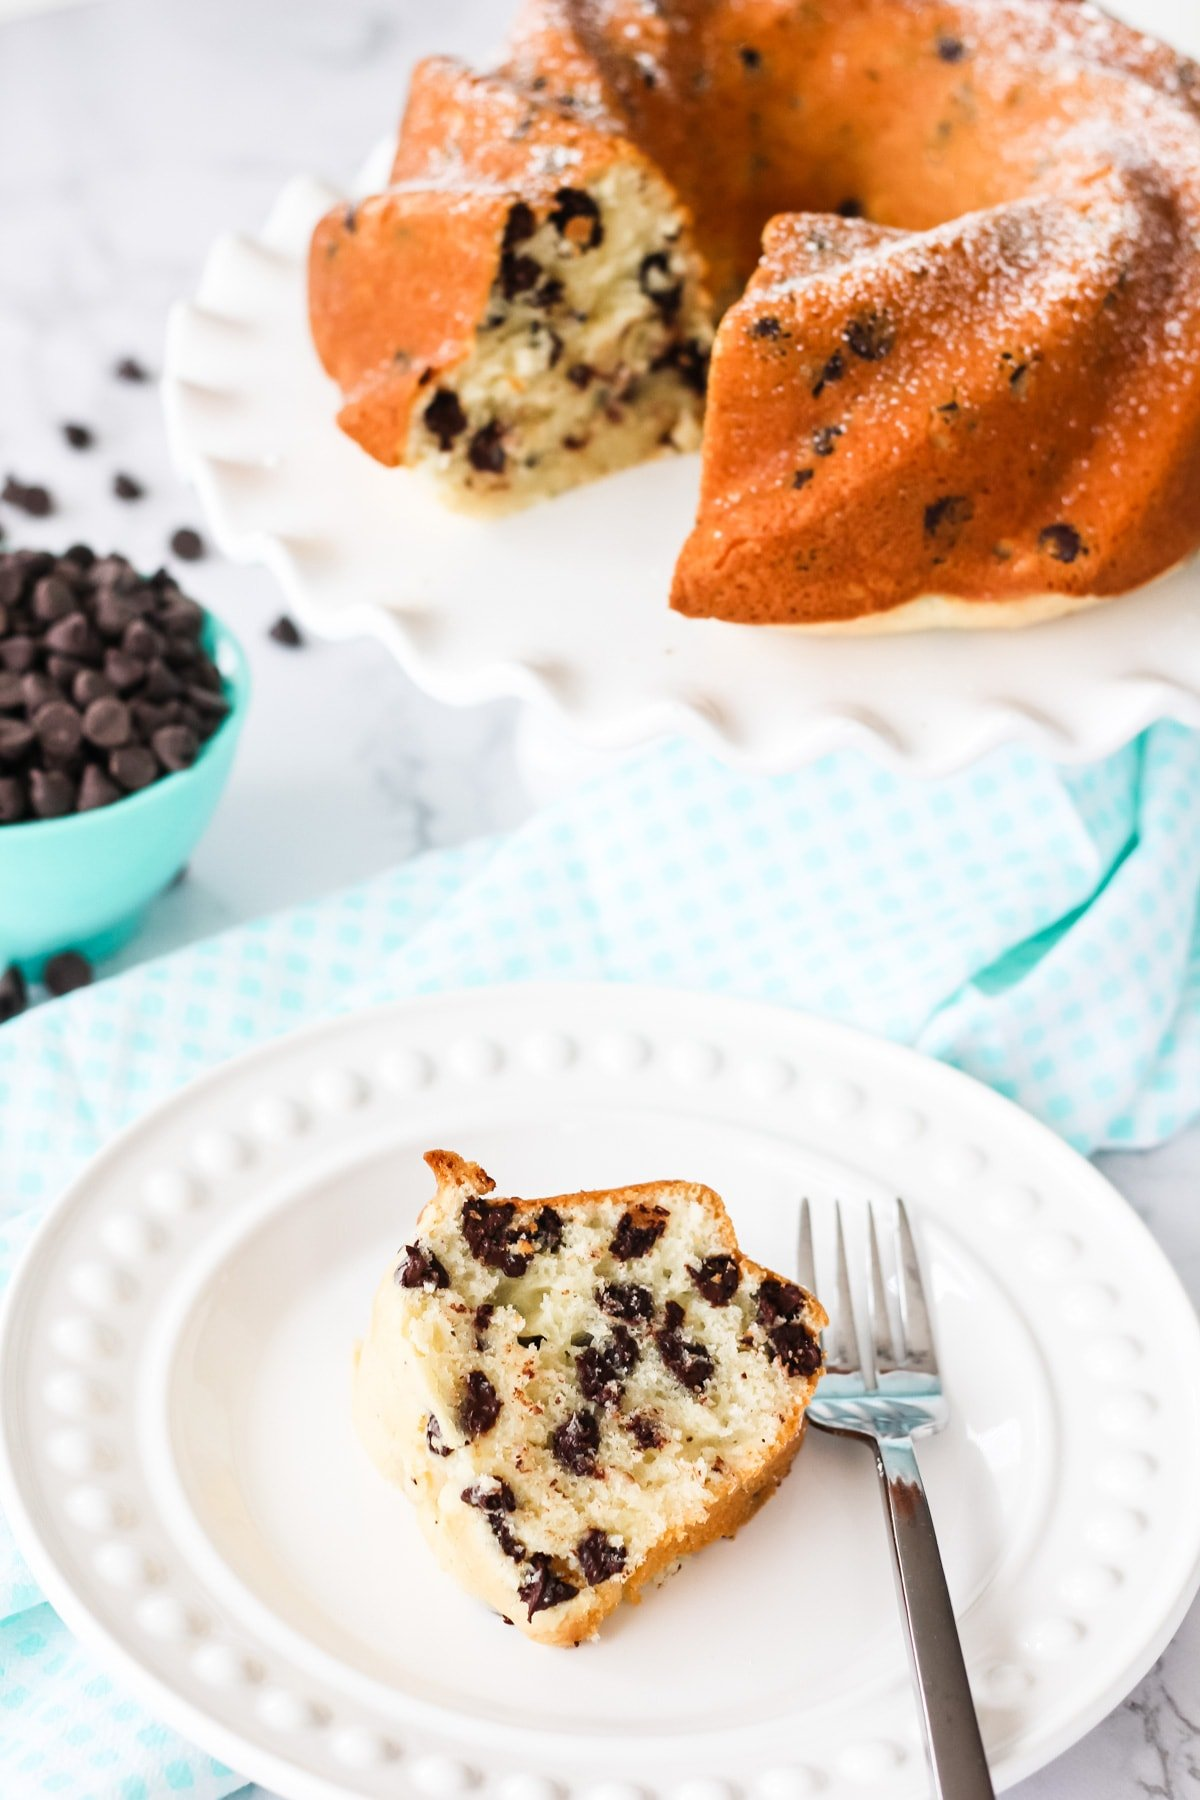 a slice of Chocolate Chip Bundt Cake on a white plate with a fork. in the background is the bundt cake and a bowl of chocolate chips and a teal gingham napkin